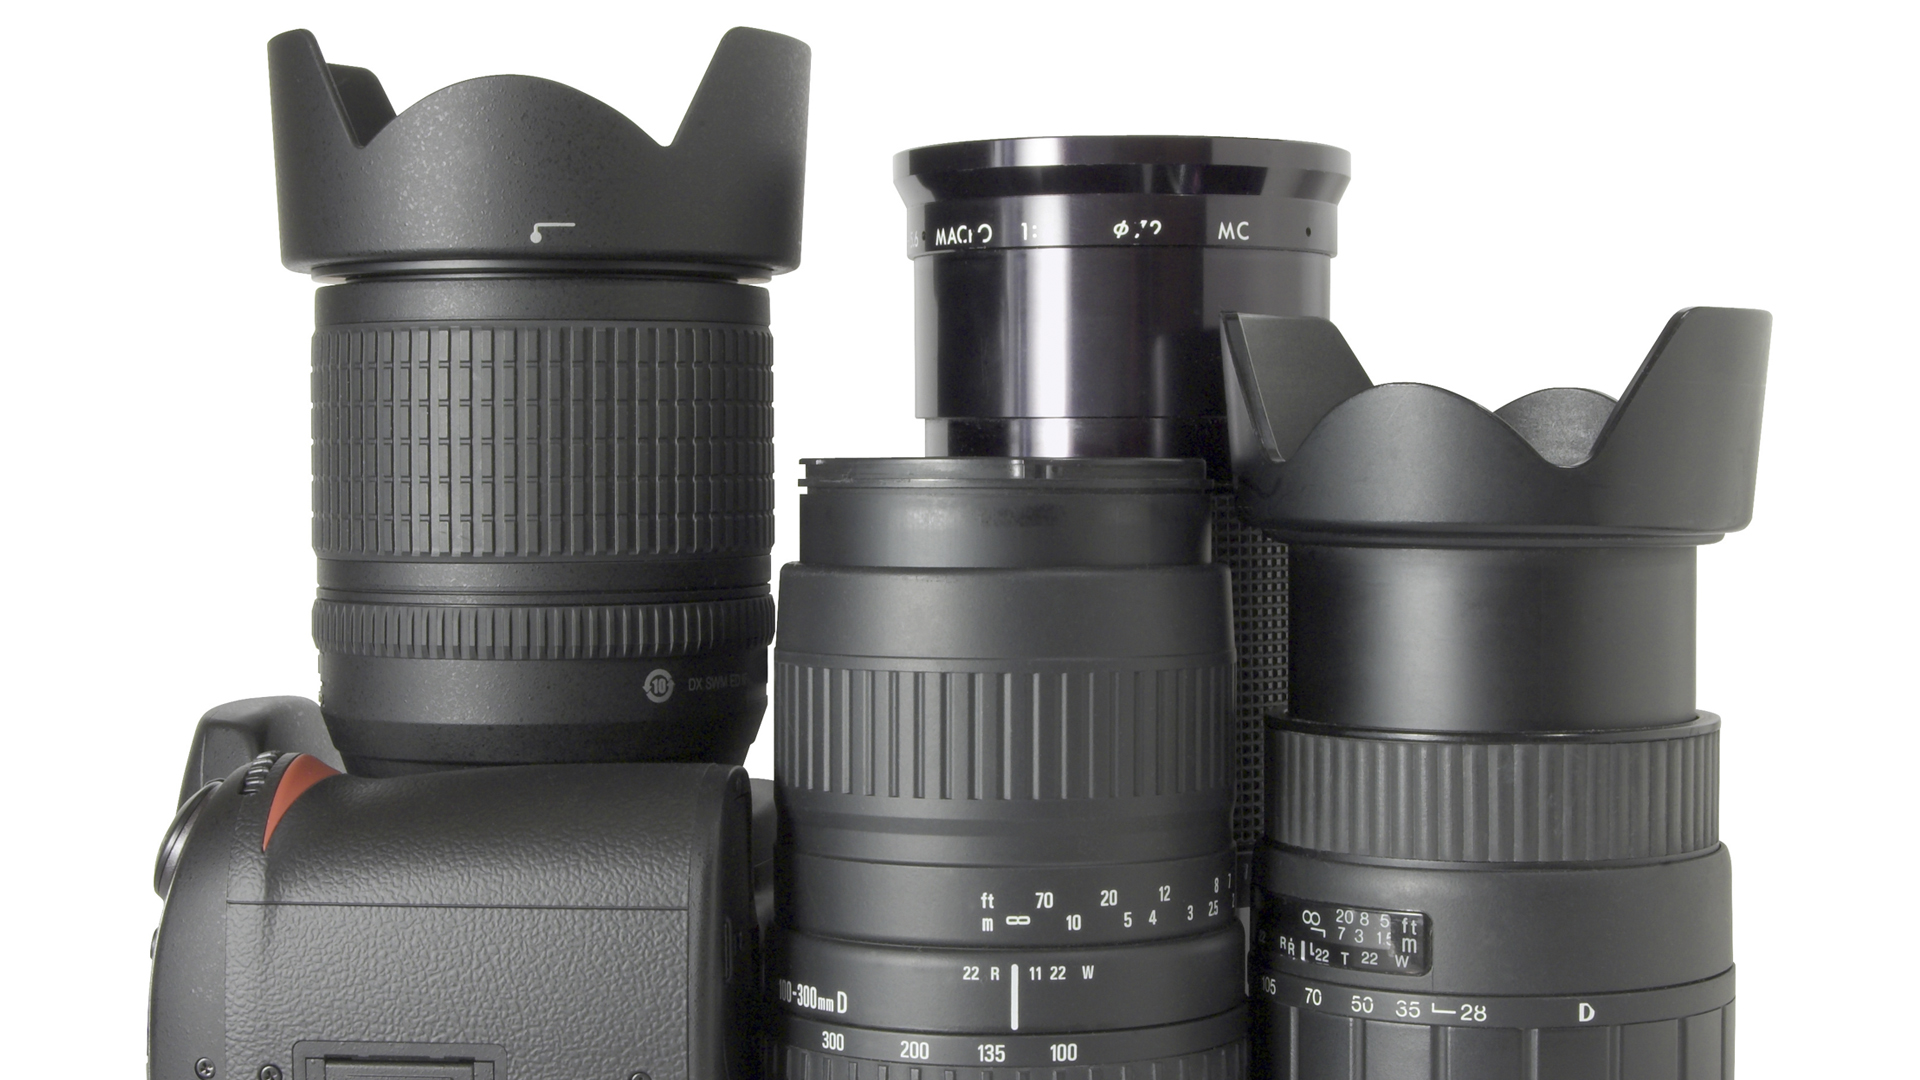 Featured -Take Control of Your Intelligent DSLR